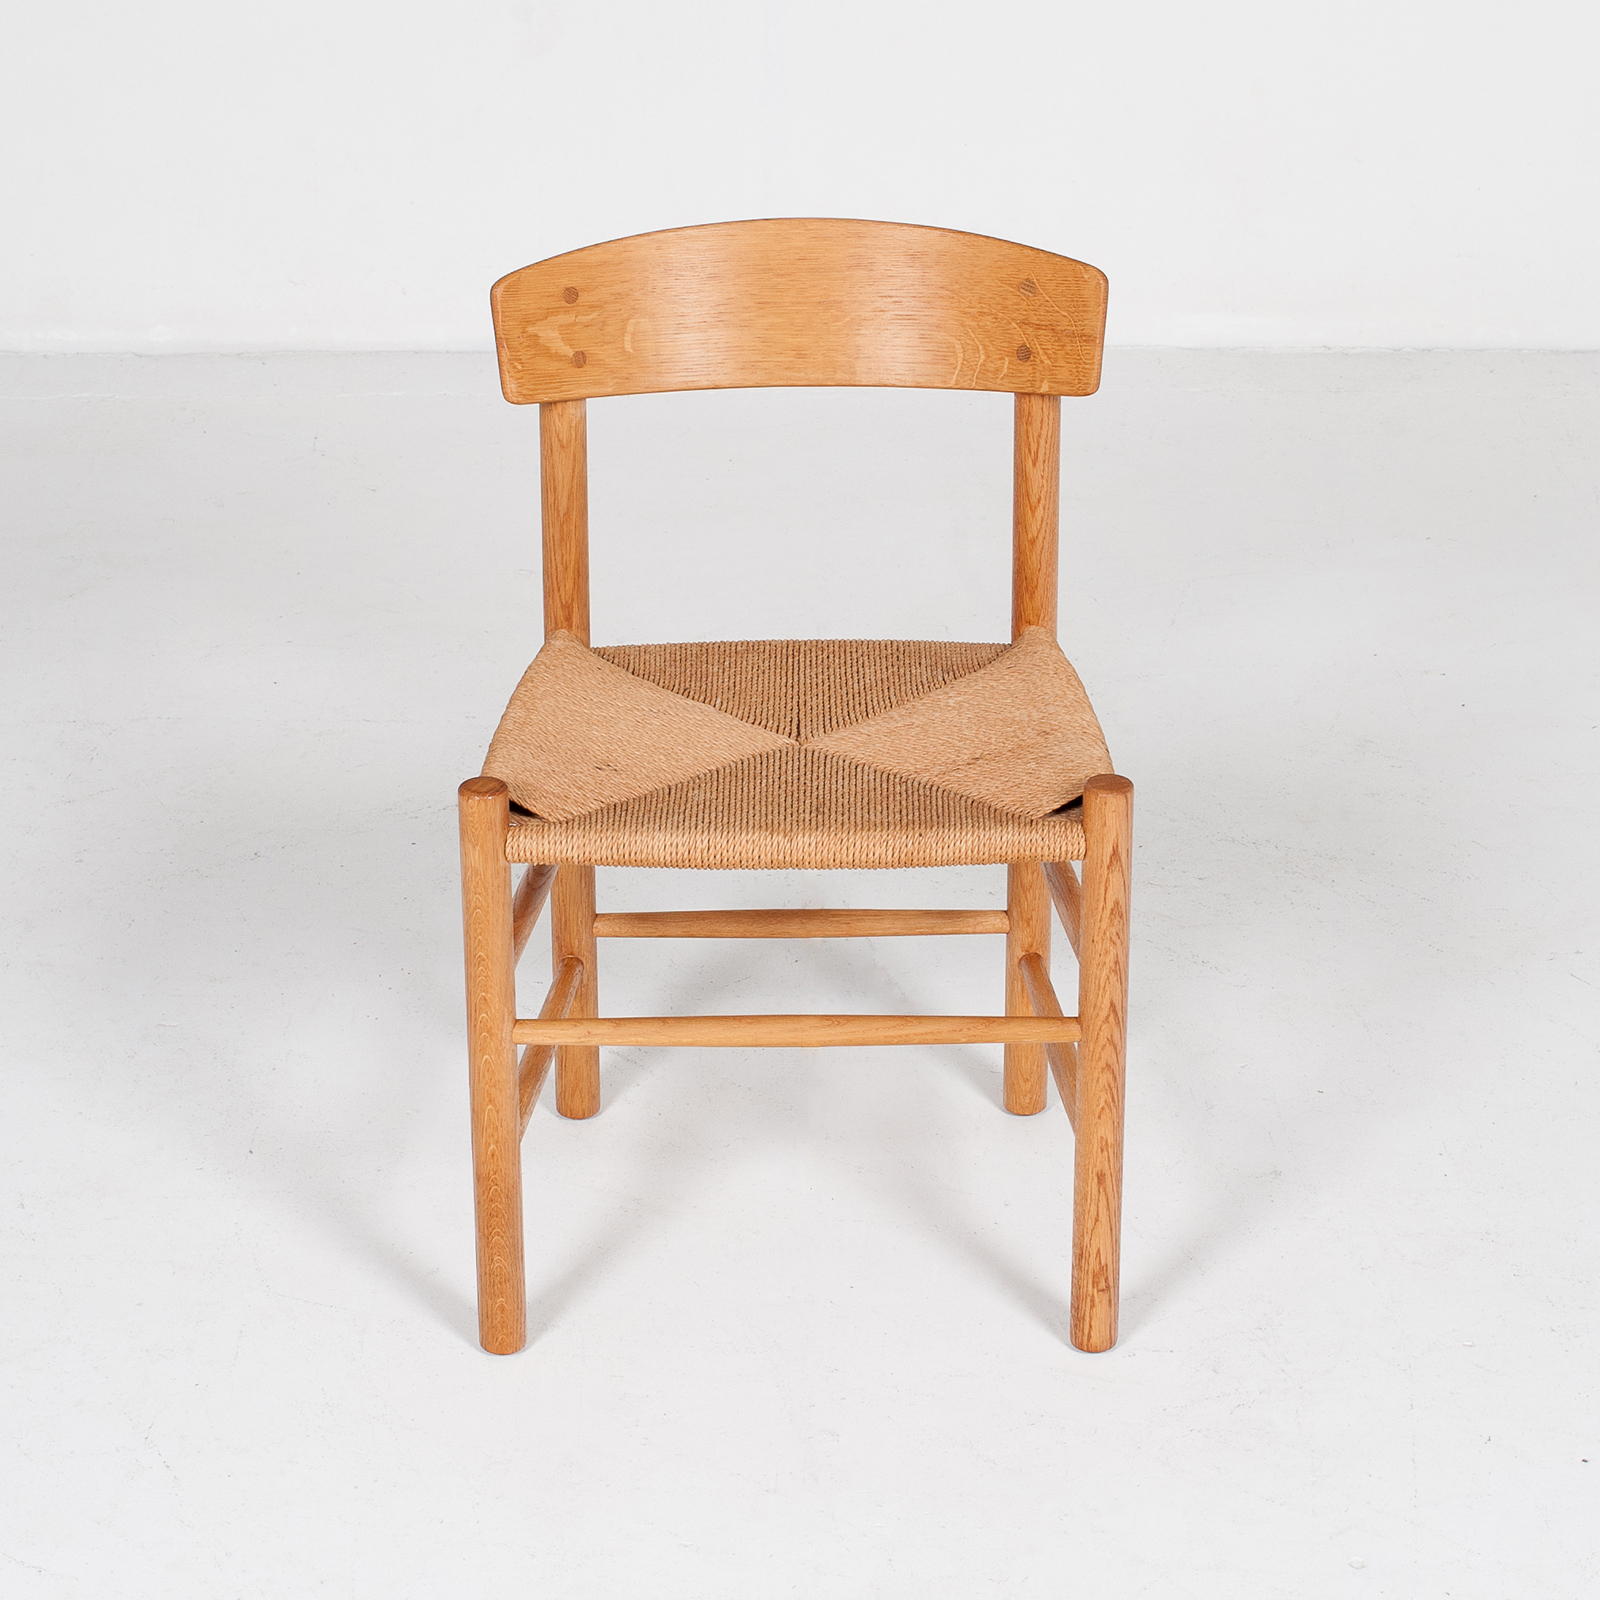 Set Of 4 Model J39 Mogensen Chairs By Borge Mogensen In Oak And Paper Cord, 1960s, Denmark86